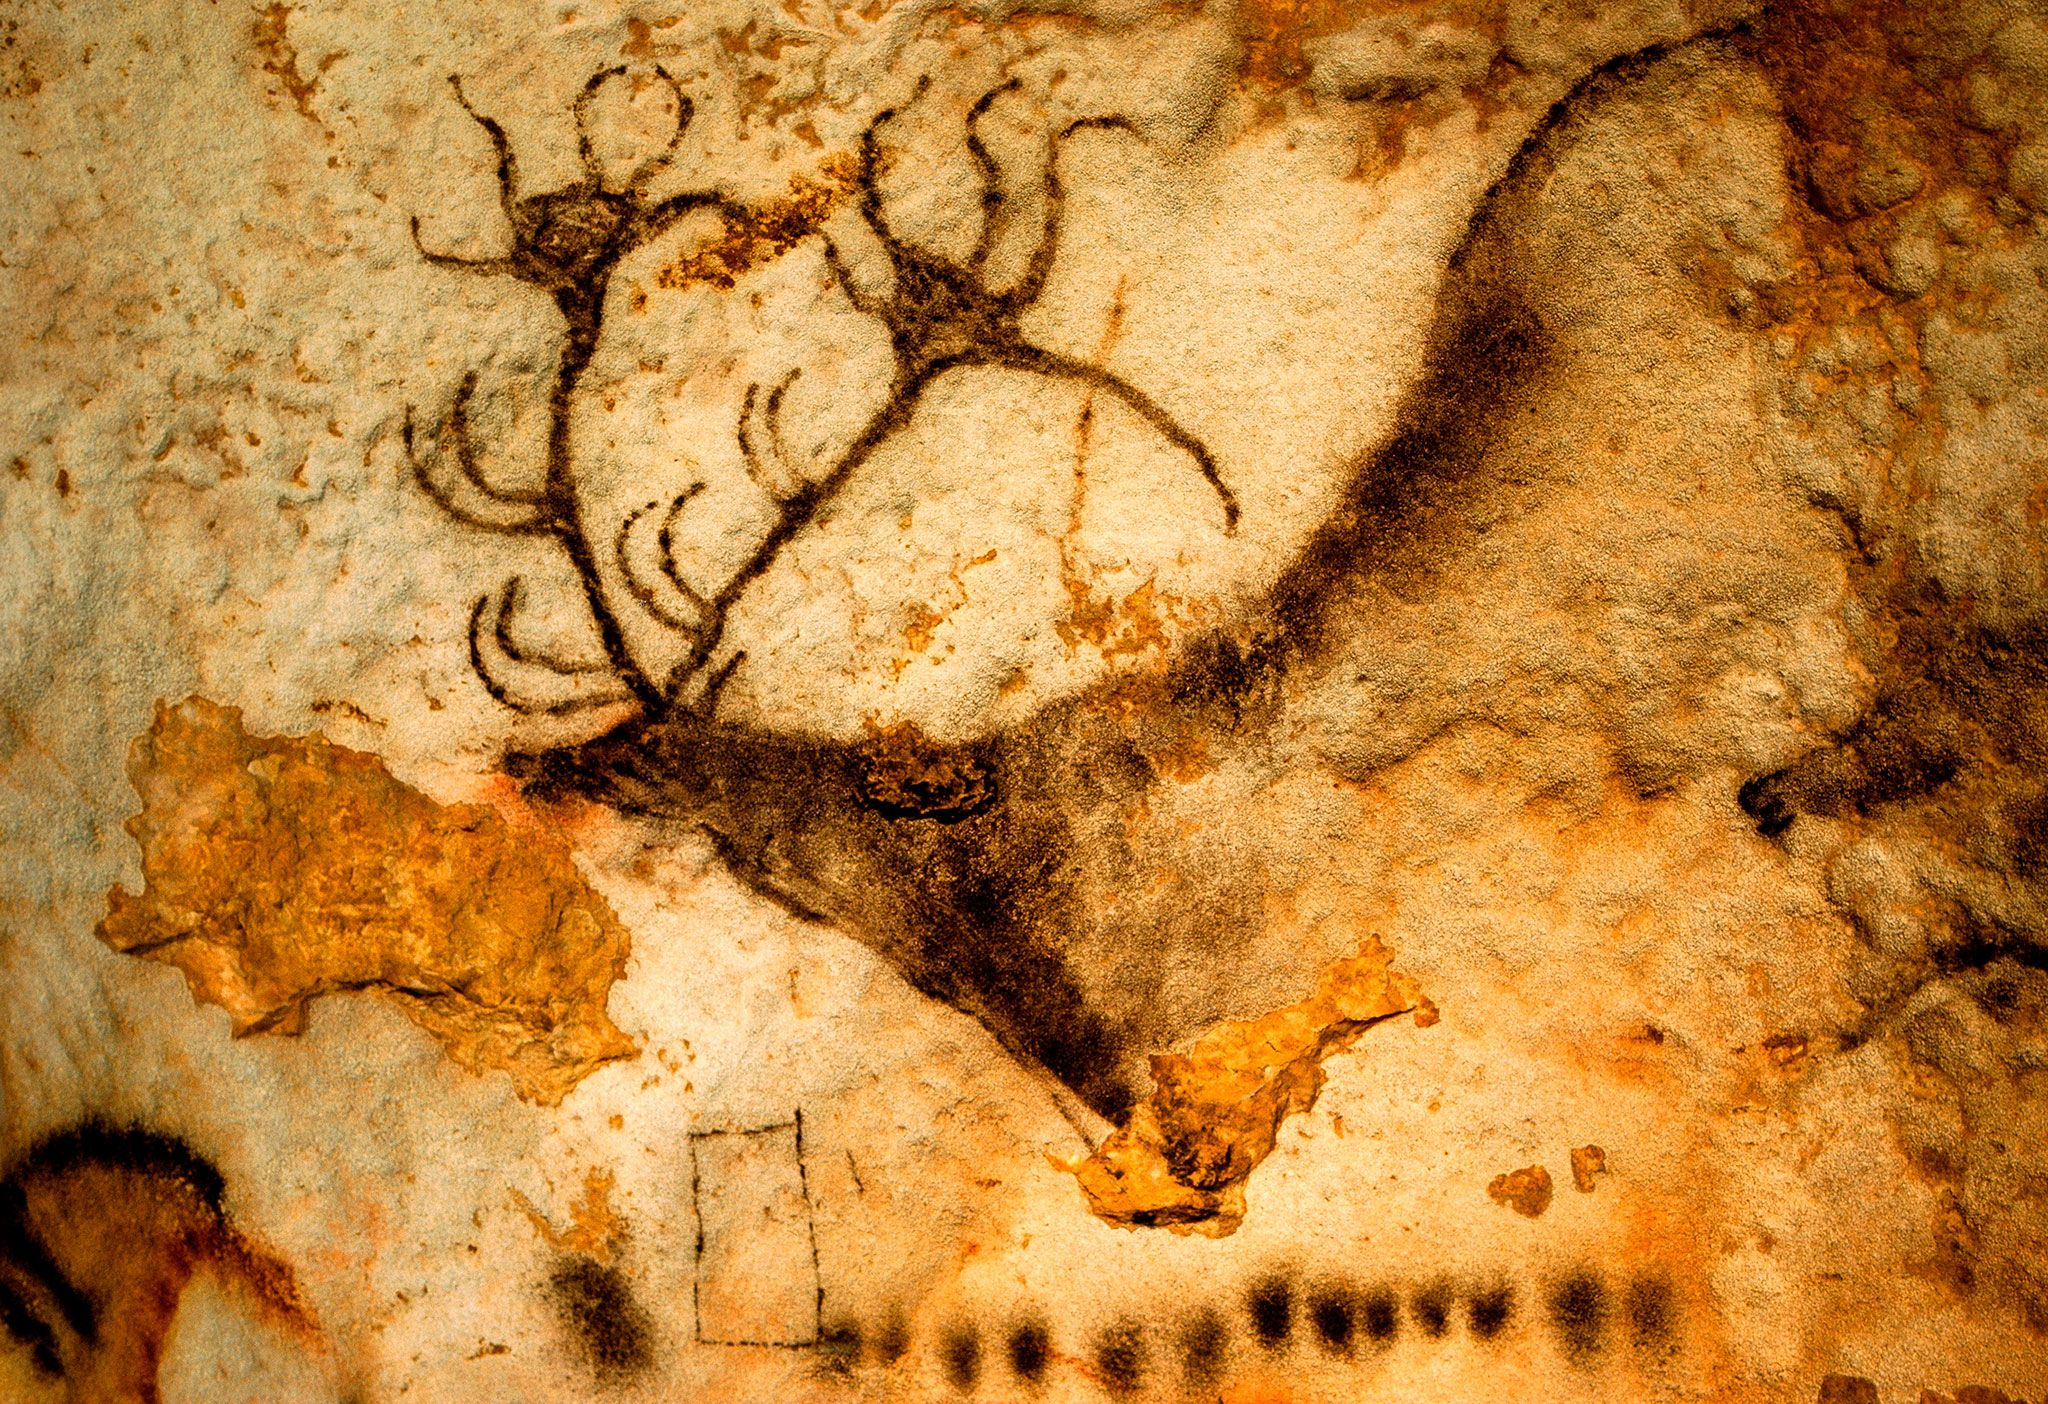 Geometric signs on cave walls and ancient artifacts may be some of humanity's earliest graphic communications.